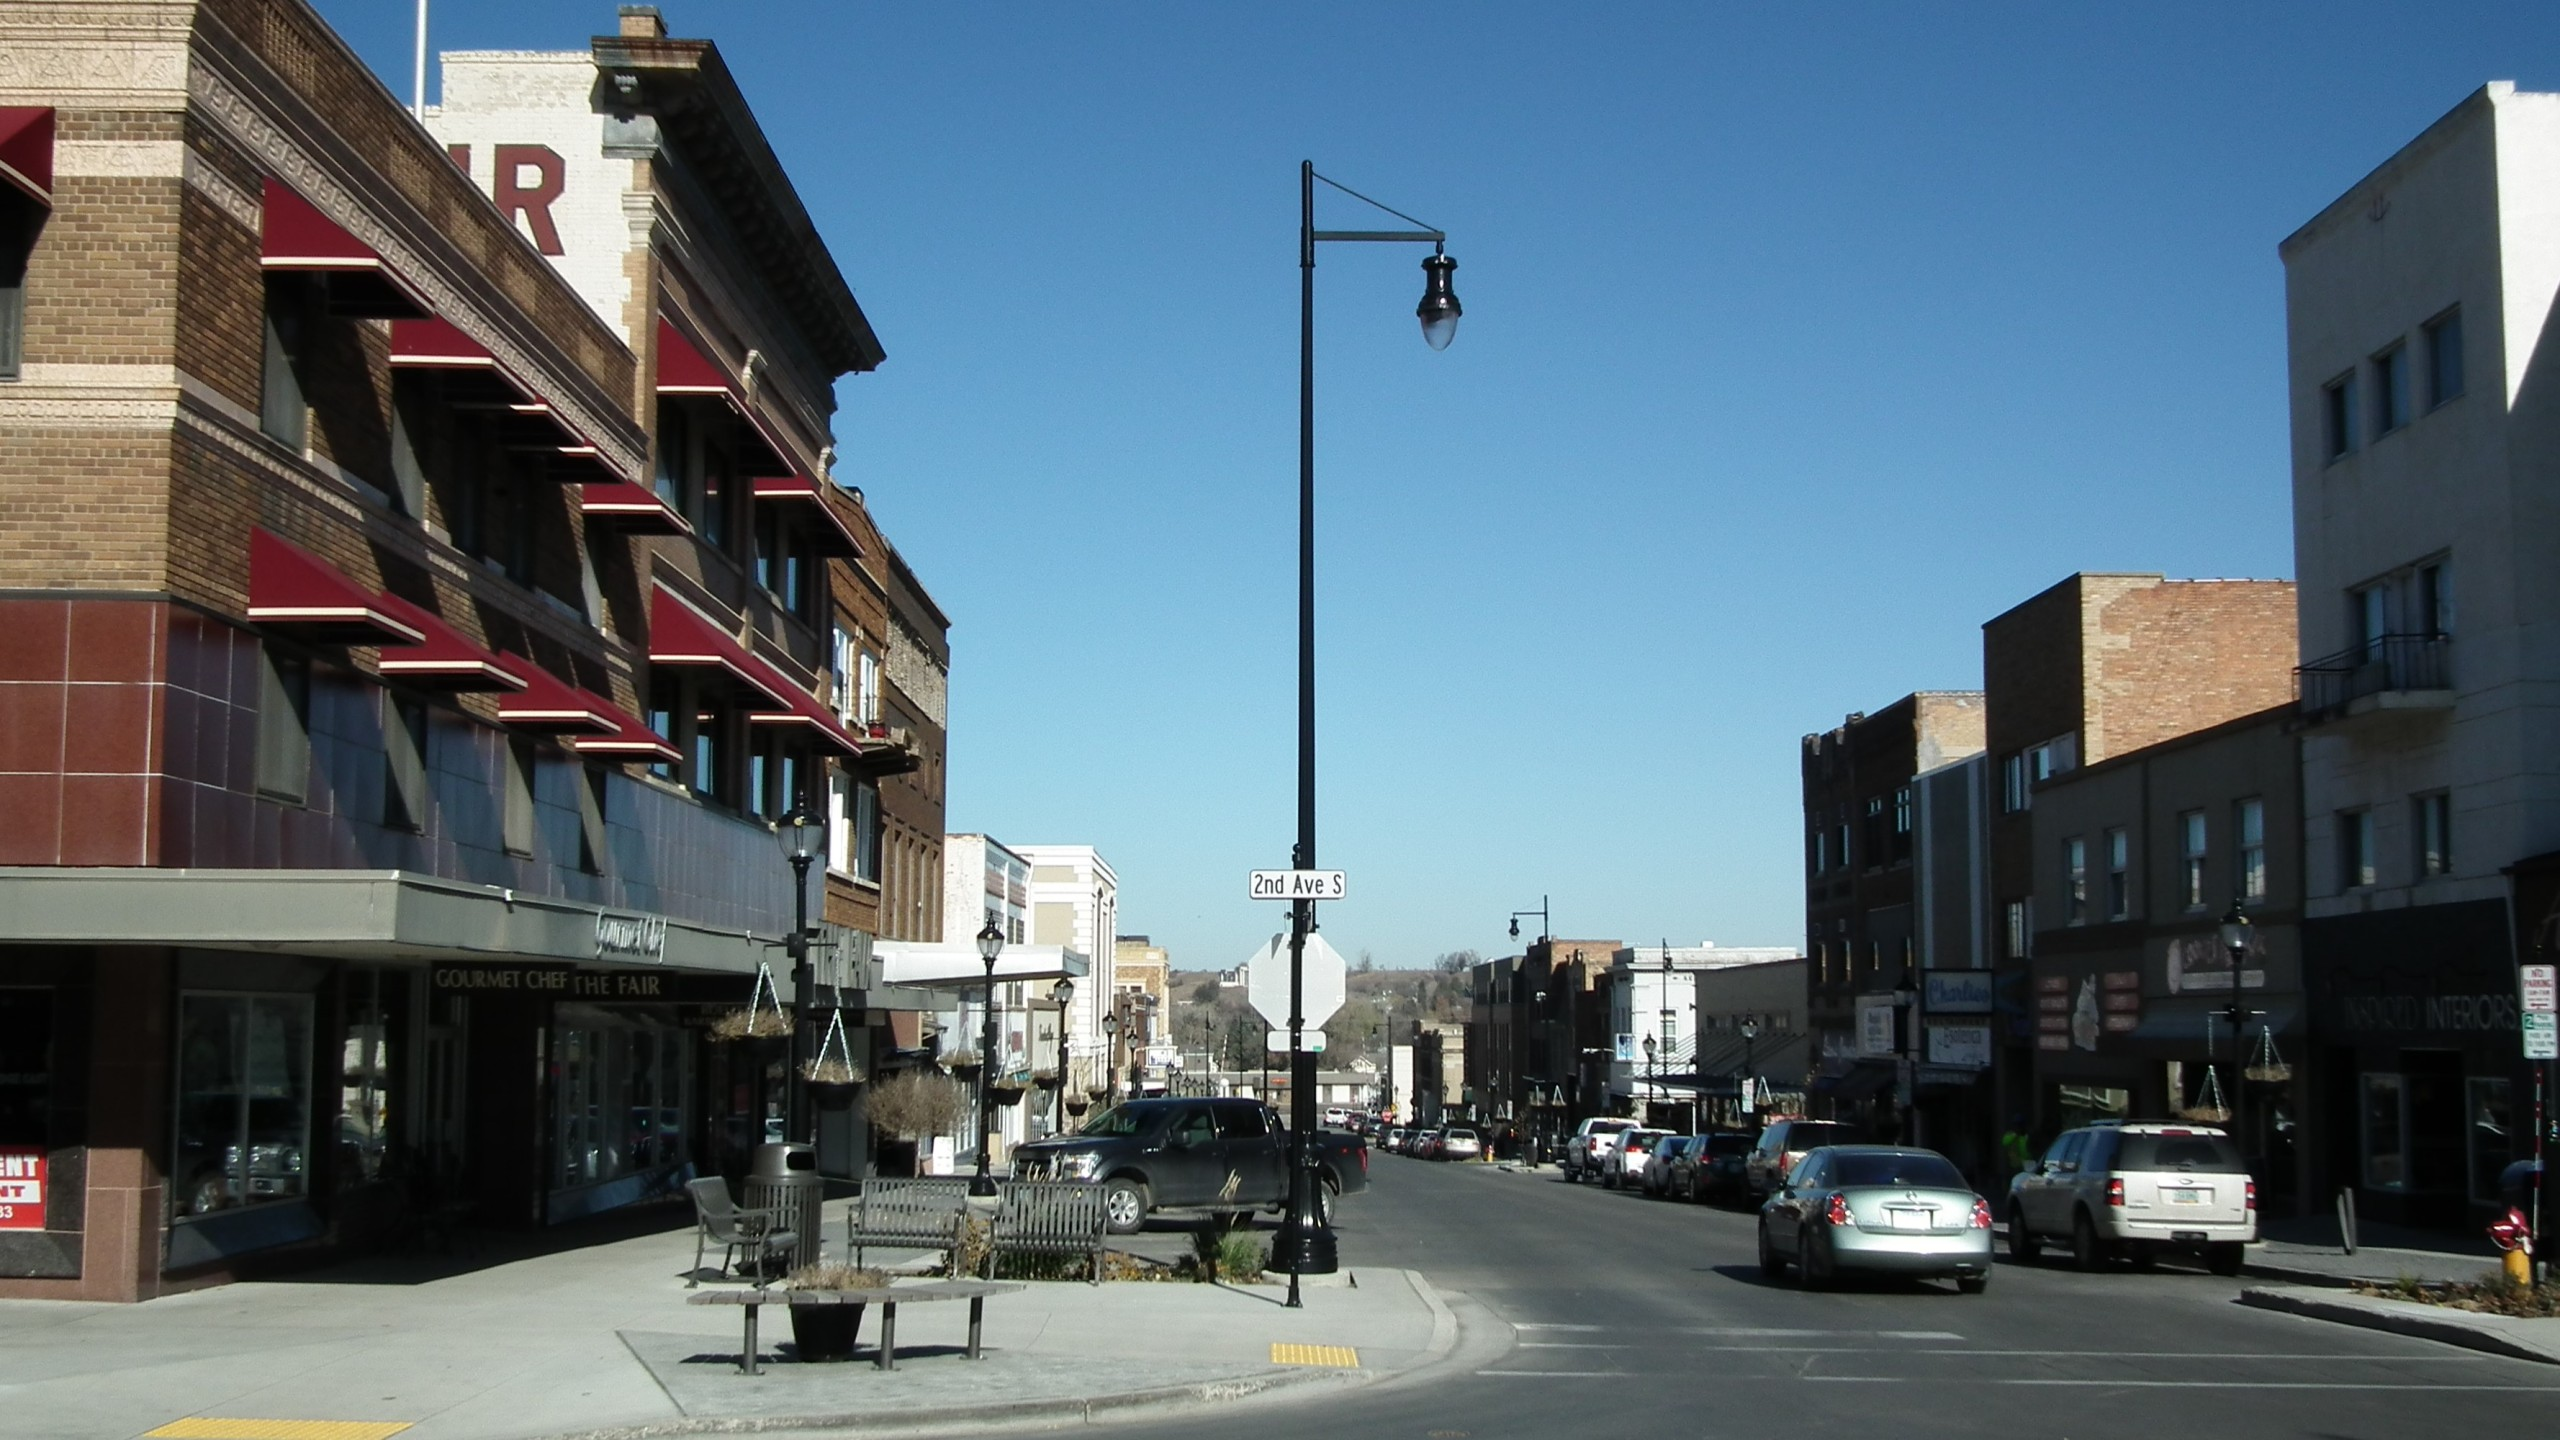 downtownminot_1545152587164.jpg